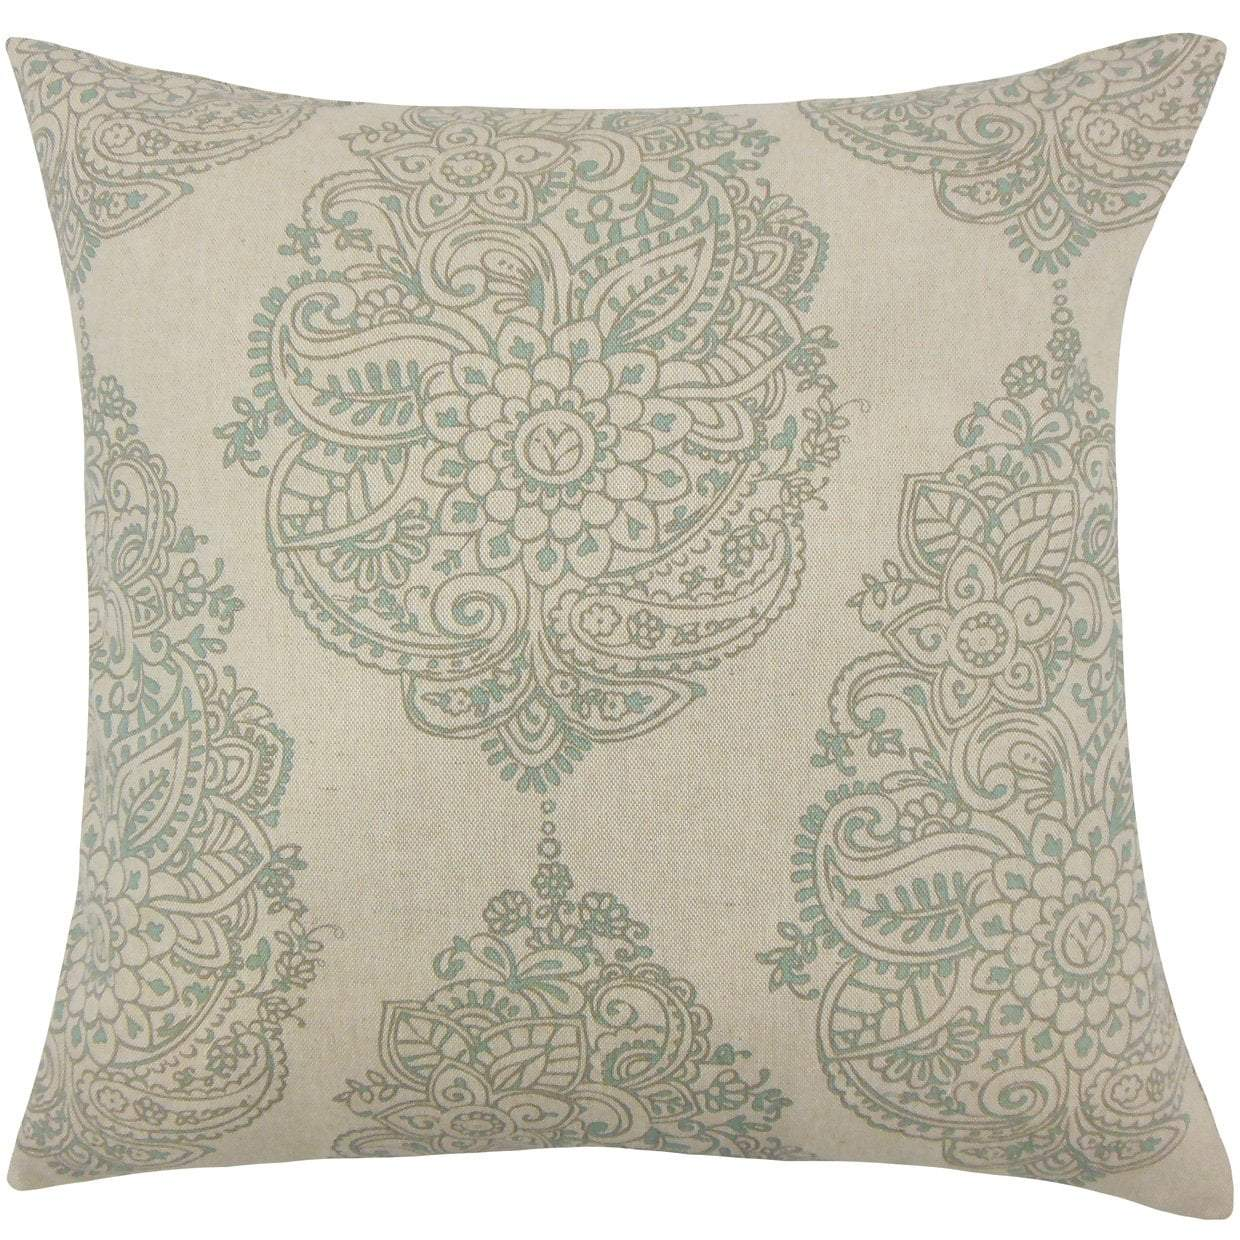 Doty Throw Pillow Cover